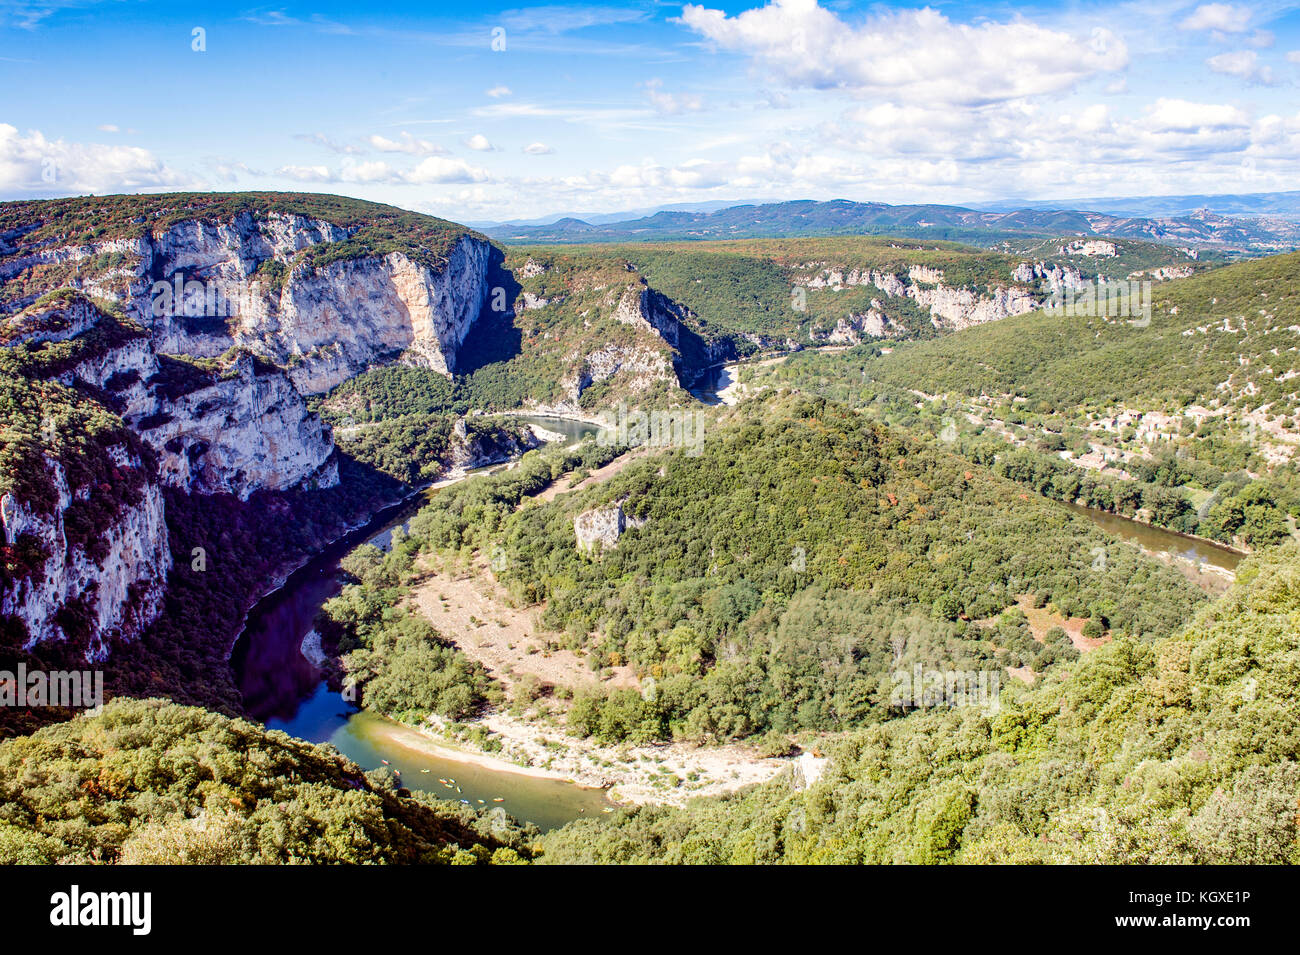 Europe. France. Rhone-Alpes. Gorges of Ardèche. Cirque of Madeleine, a bend in the Ardeche River - Stock Image